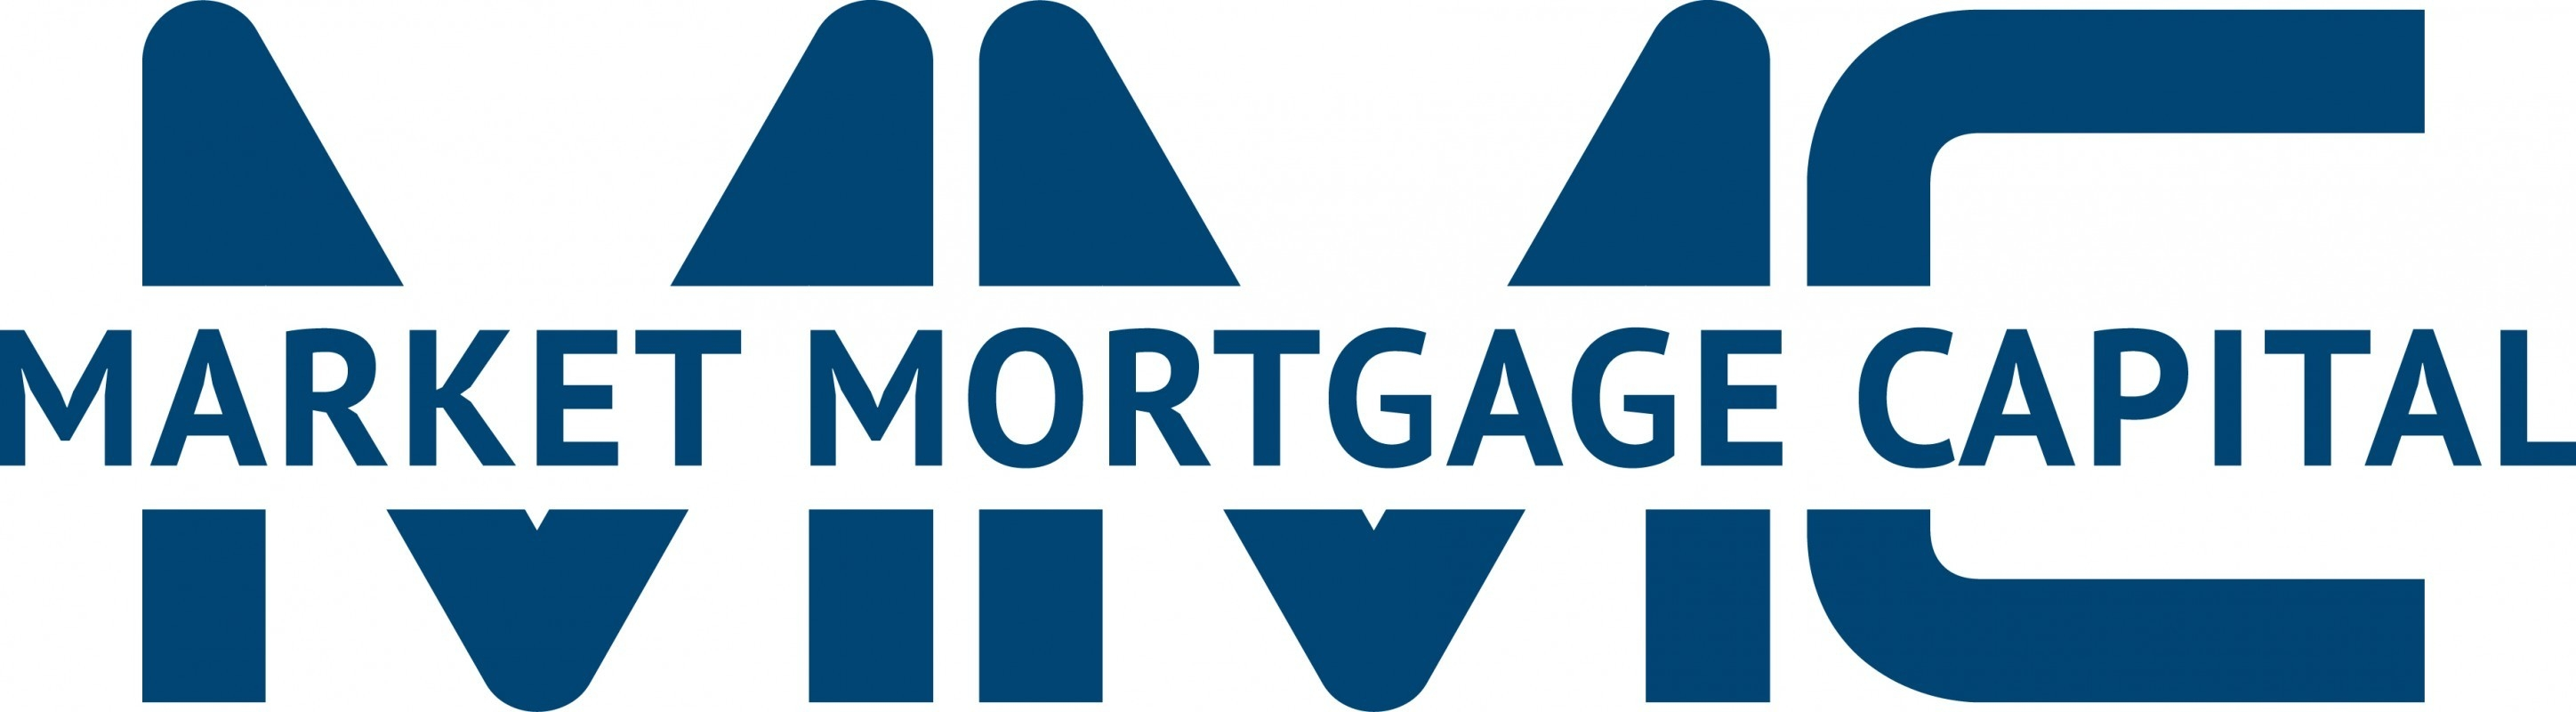 Market Mortgage Capital, Inc.